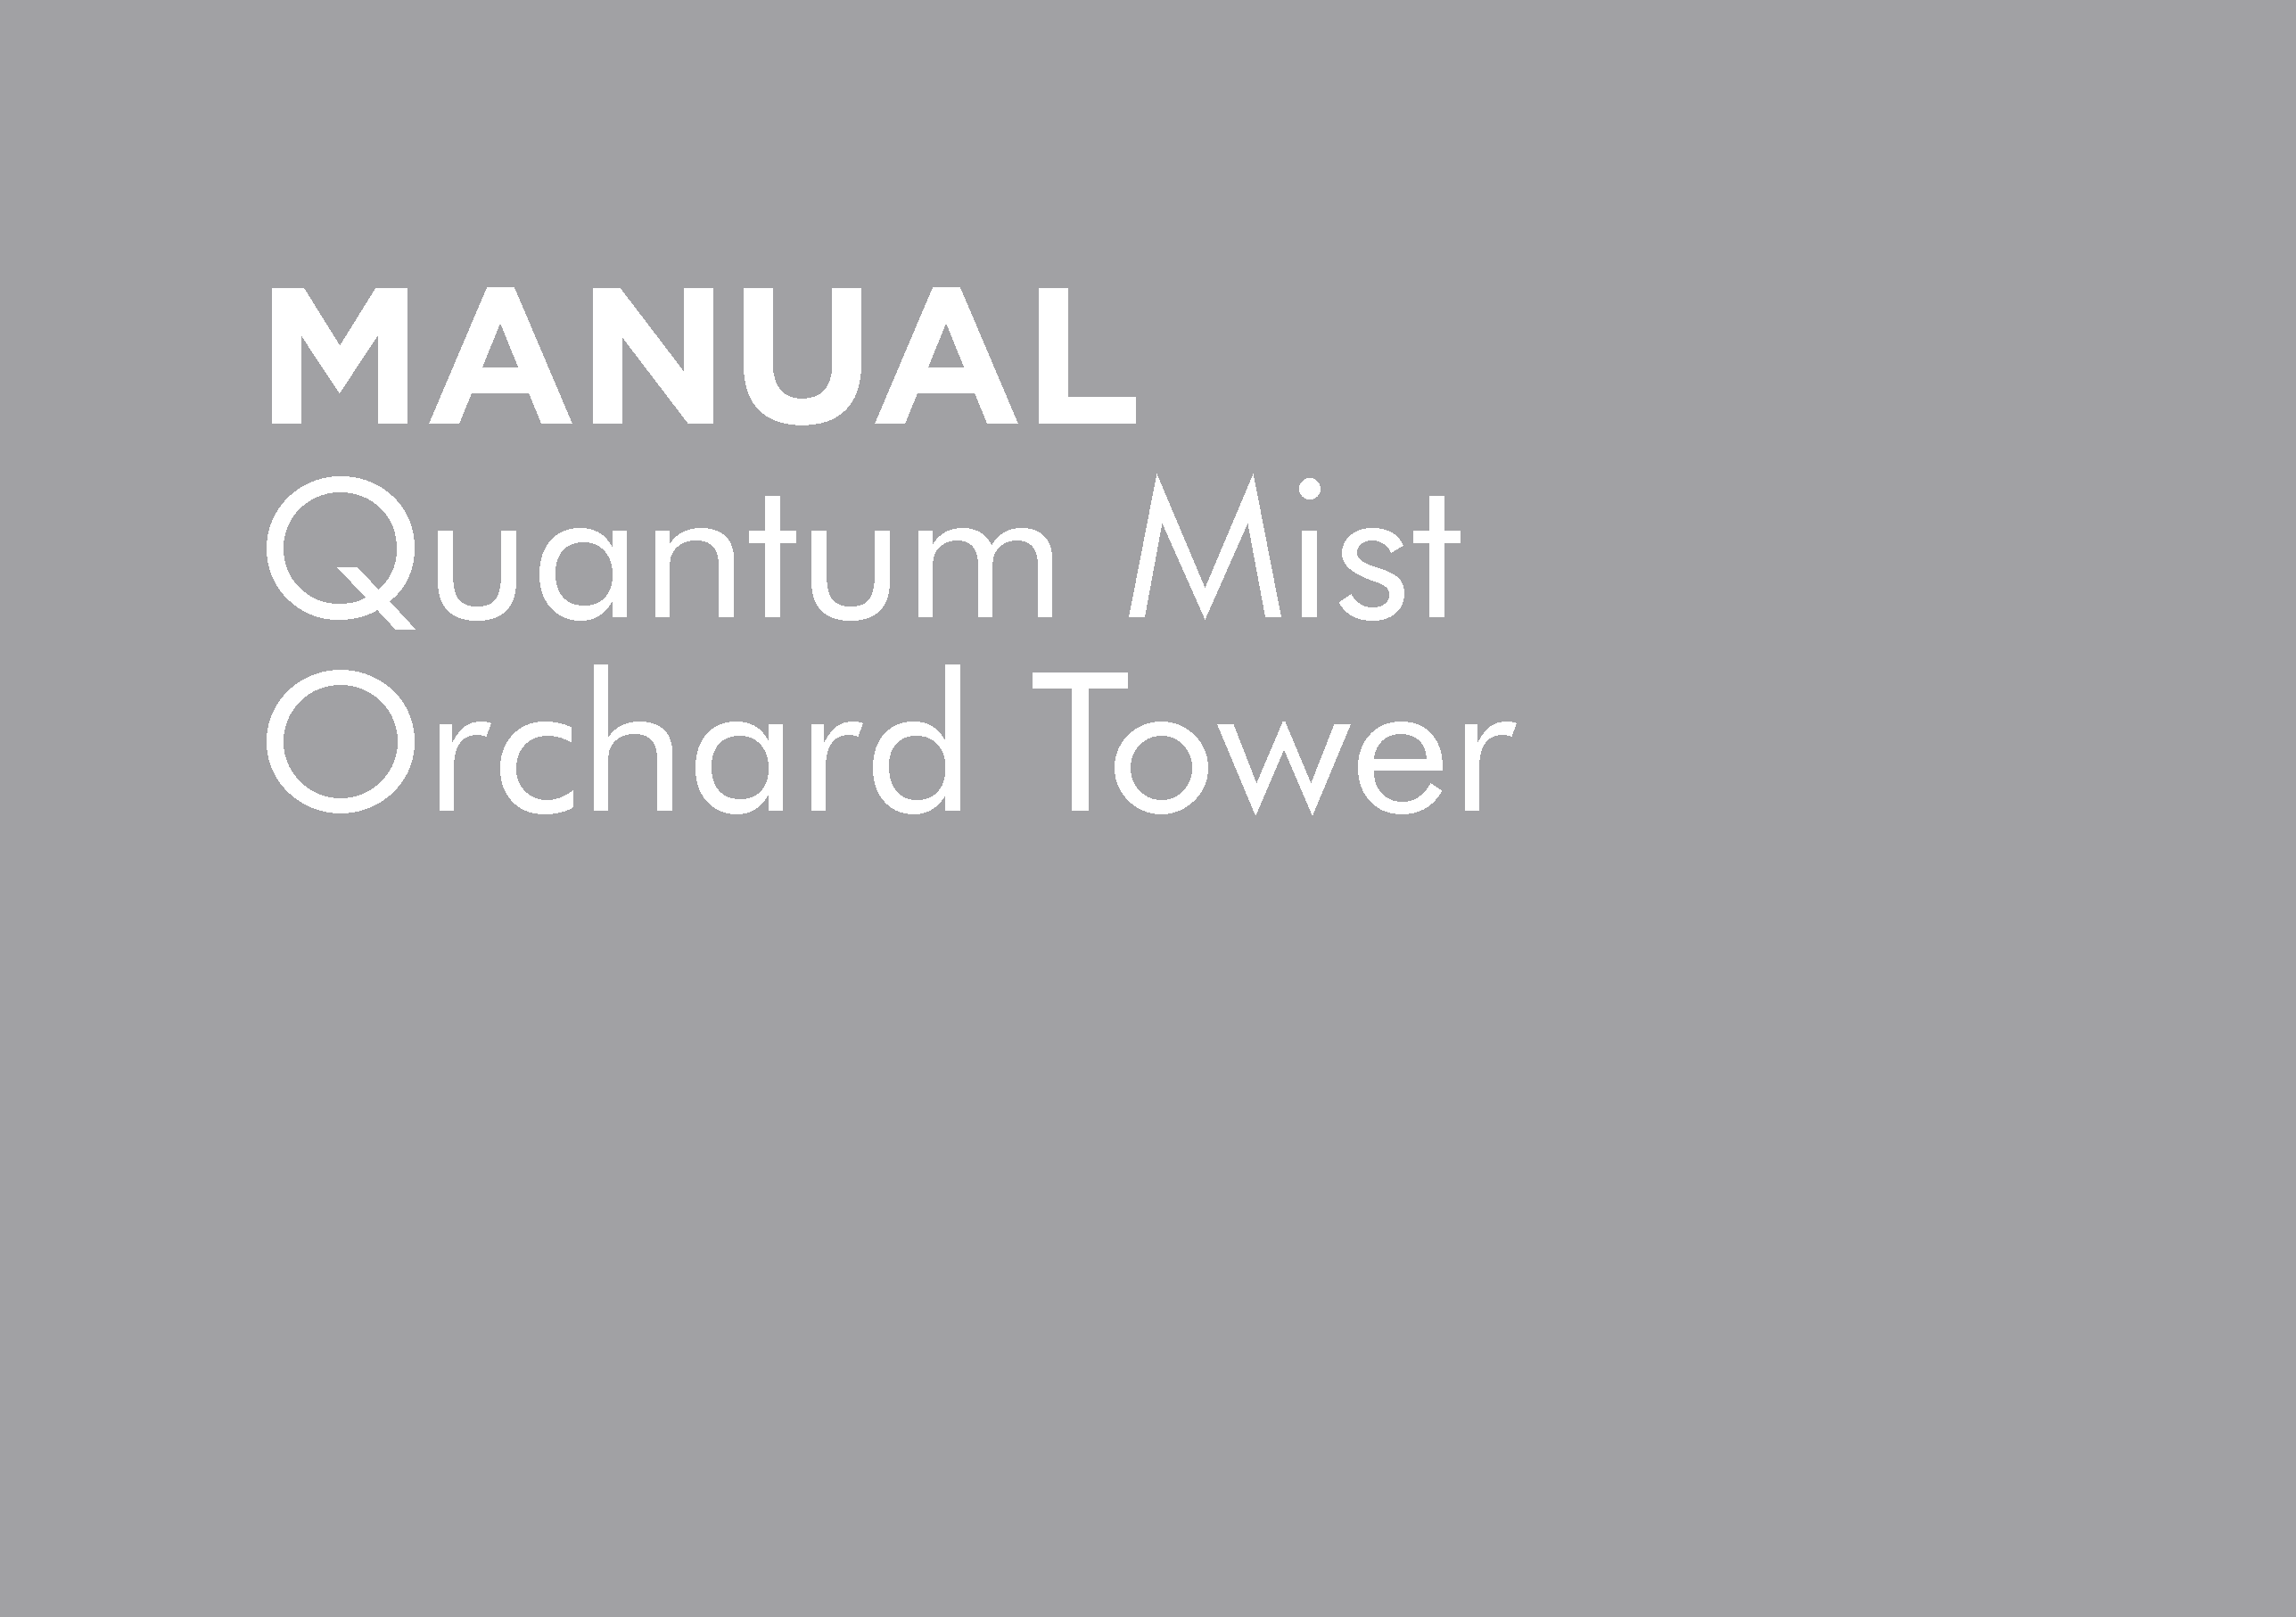 HT-OMORCHARD-A – QM420 ORCHARD TOWER MANUAL